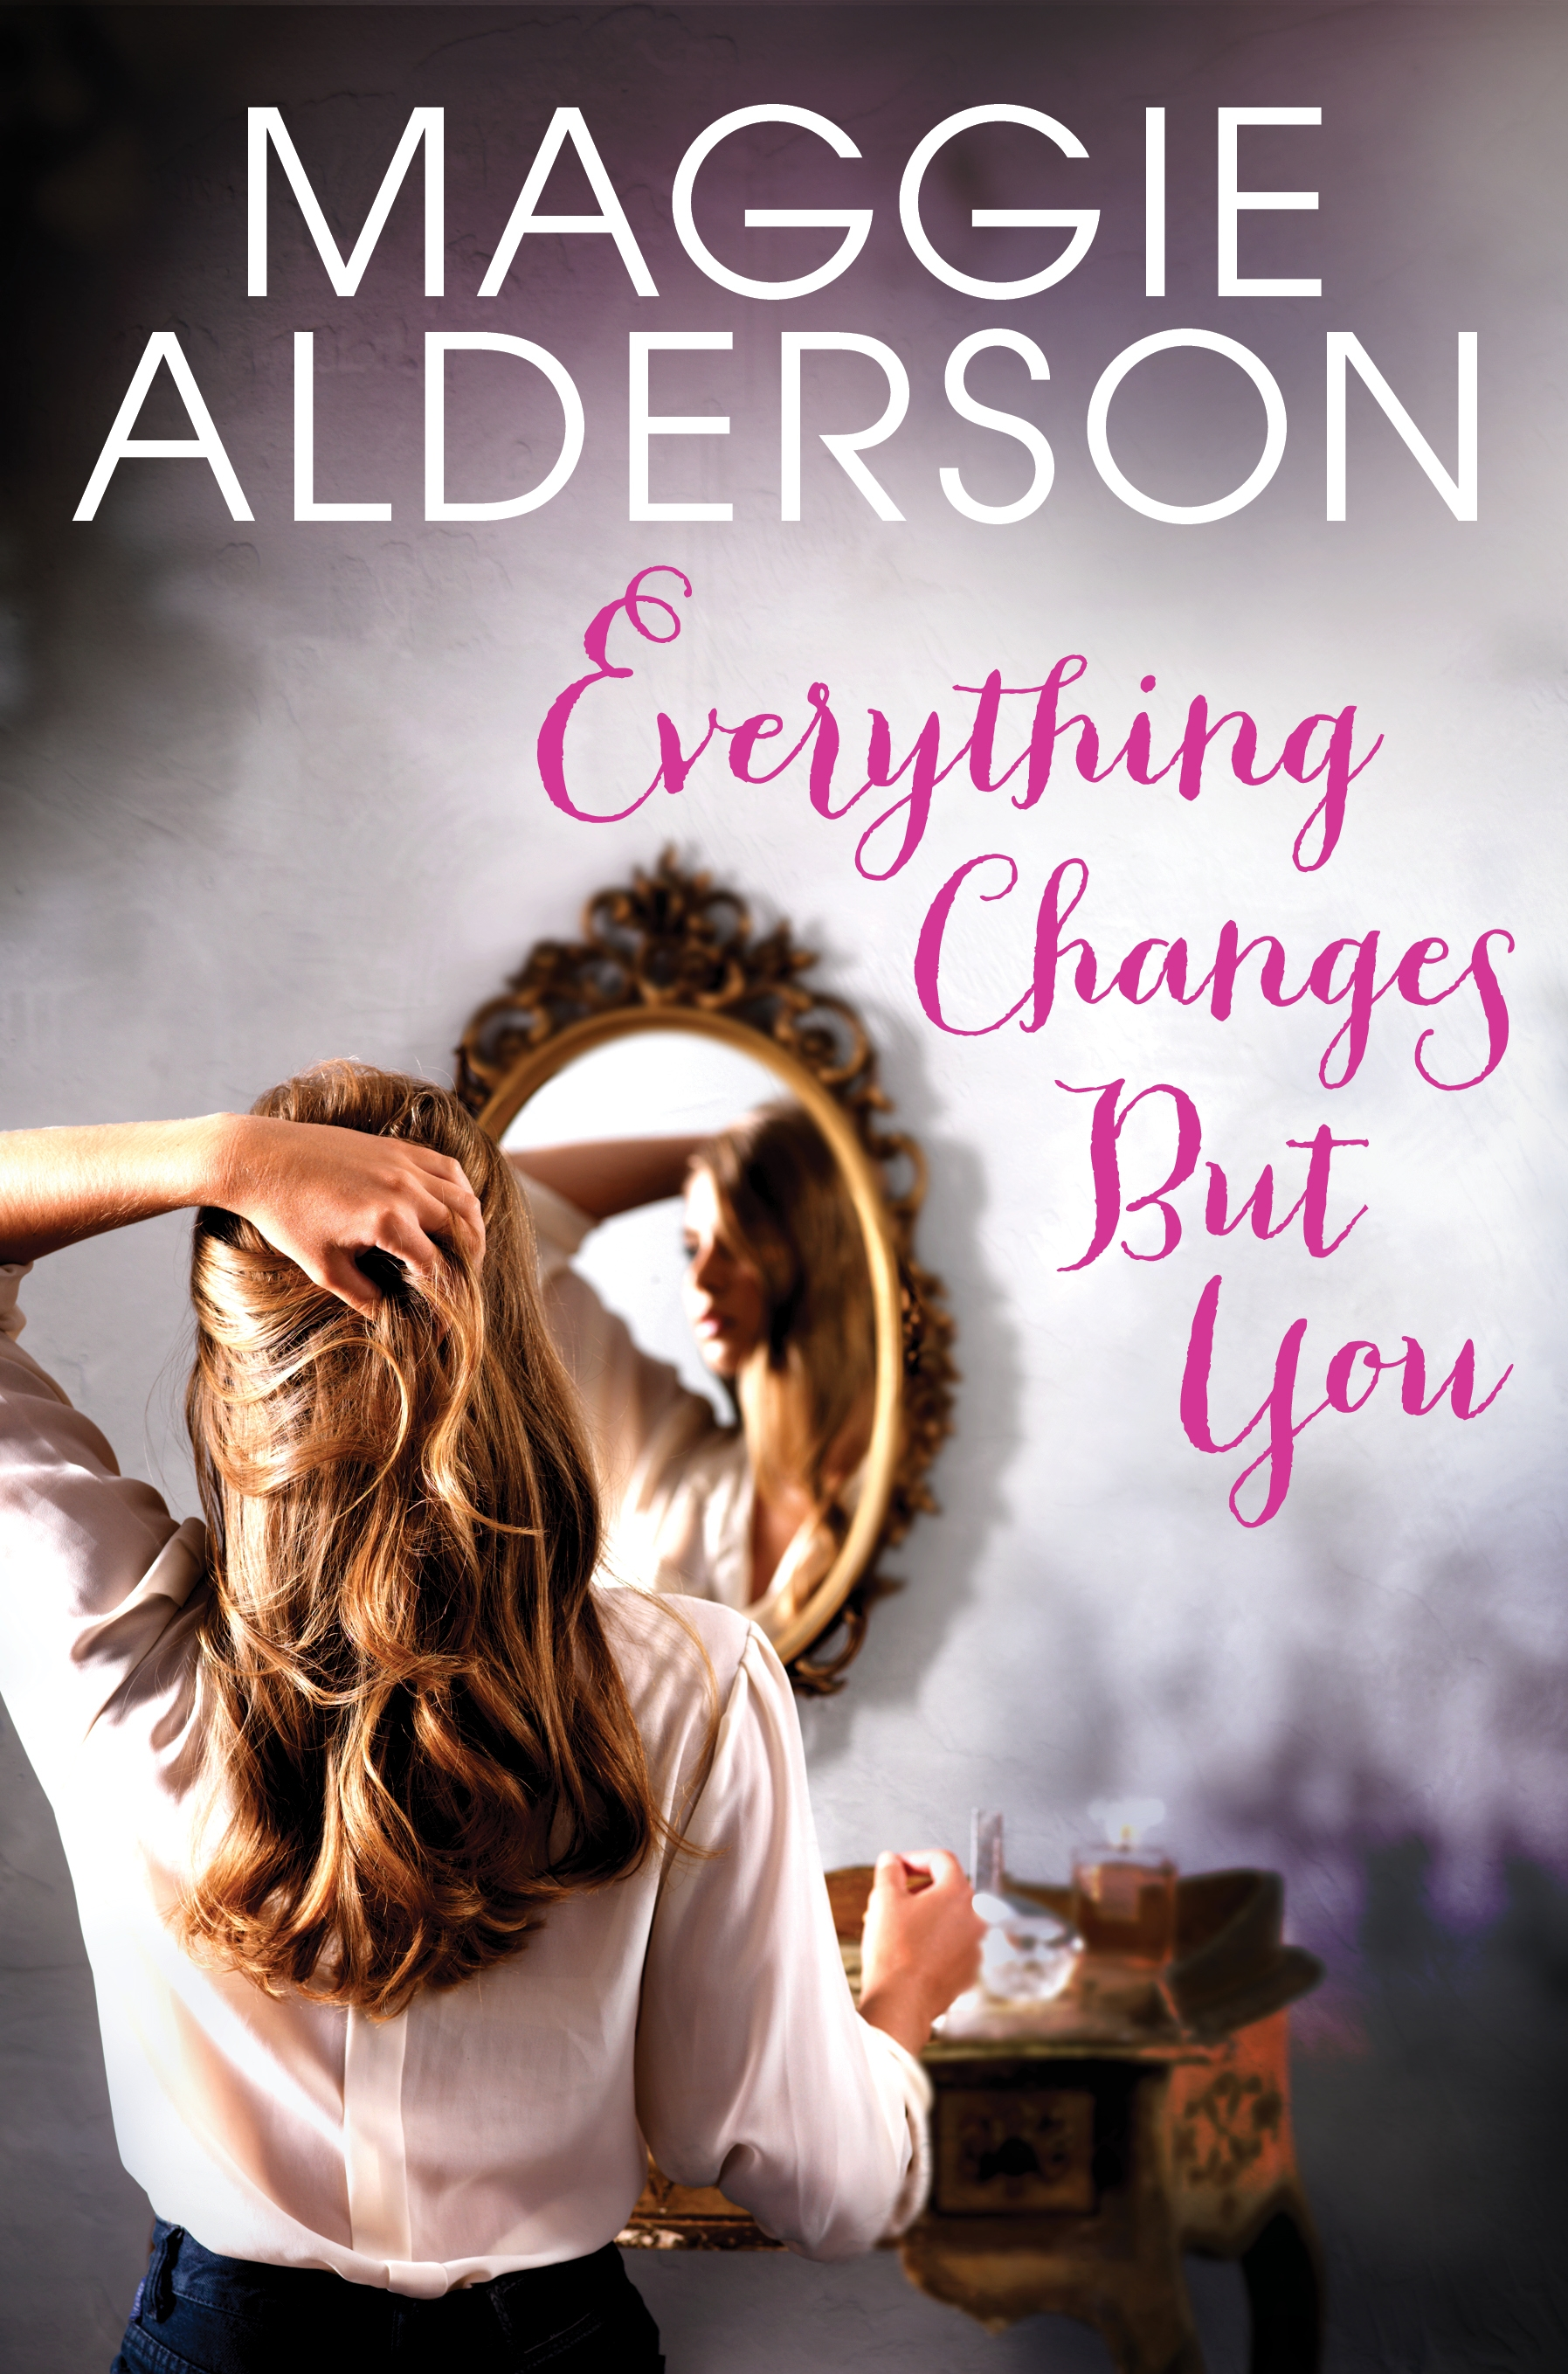 maggie alderson's new book everything changes but you